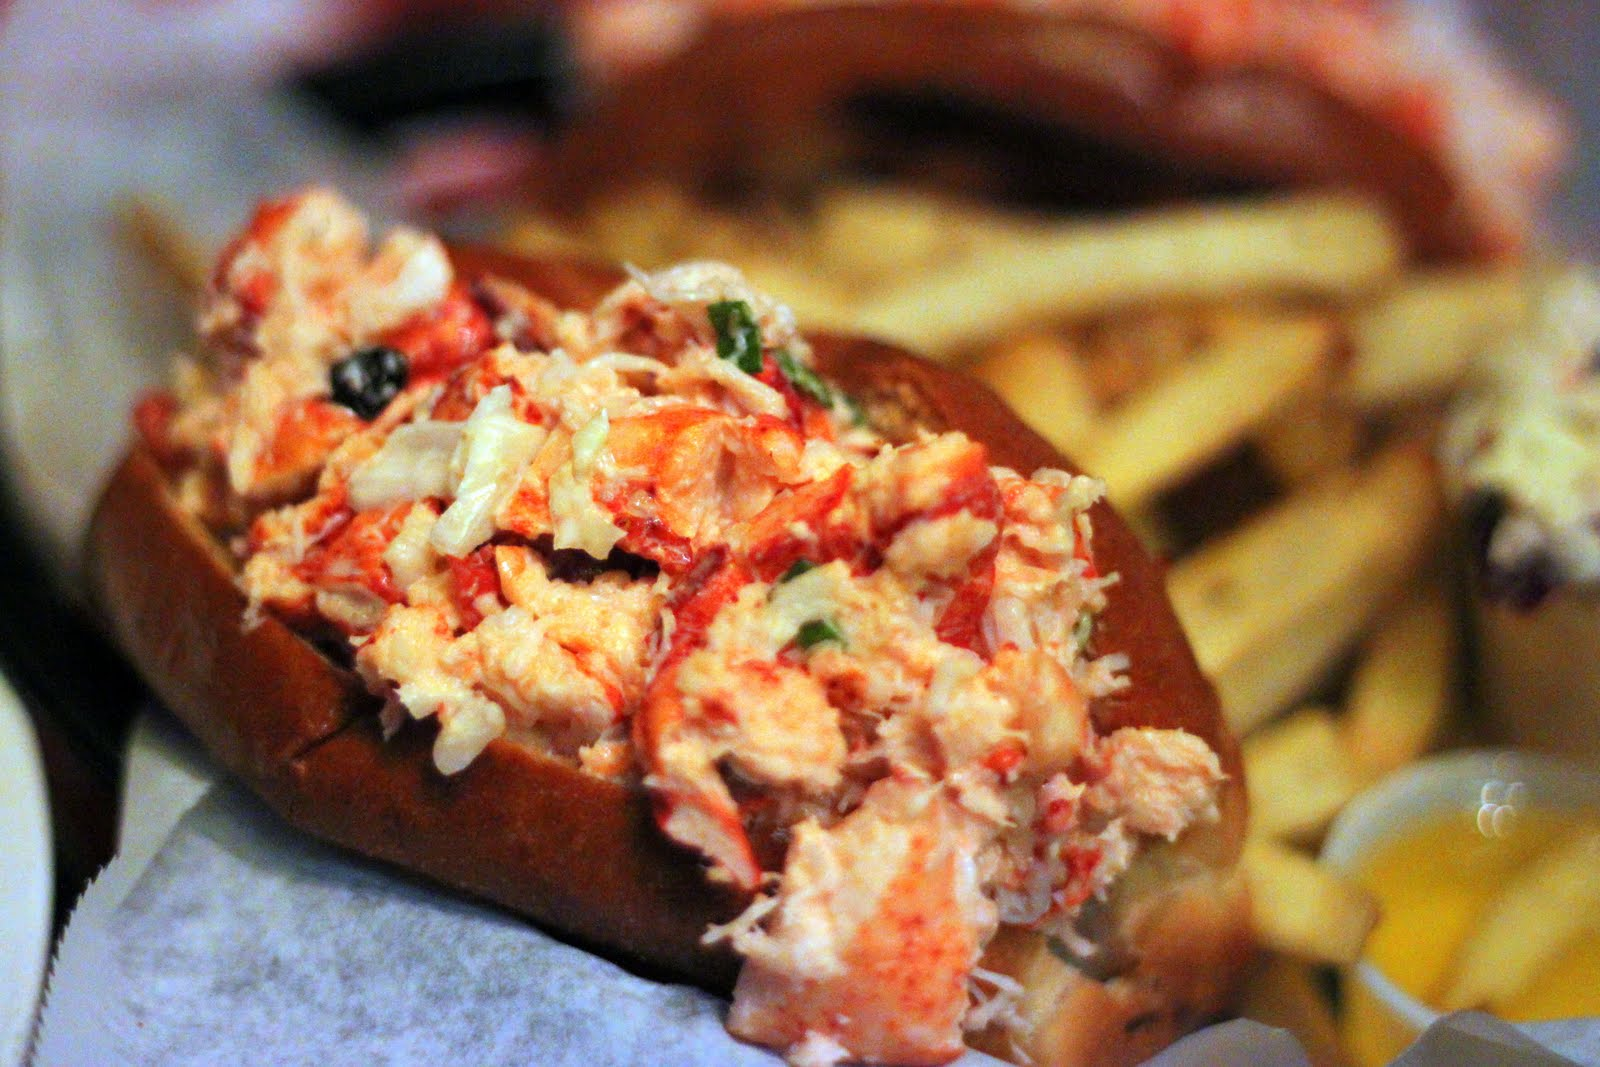 The Iron Chevsky Wine Blog: Another trip to the Old Port Lobster Shack, with Greek in hand